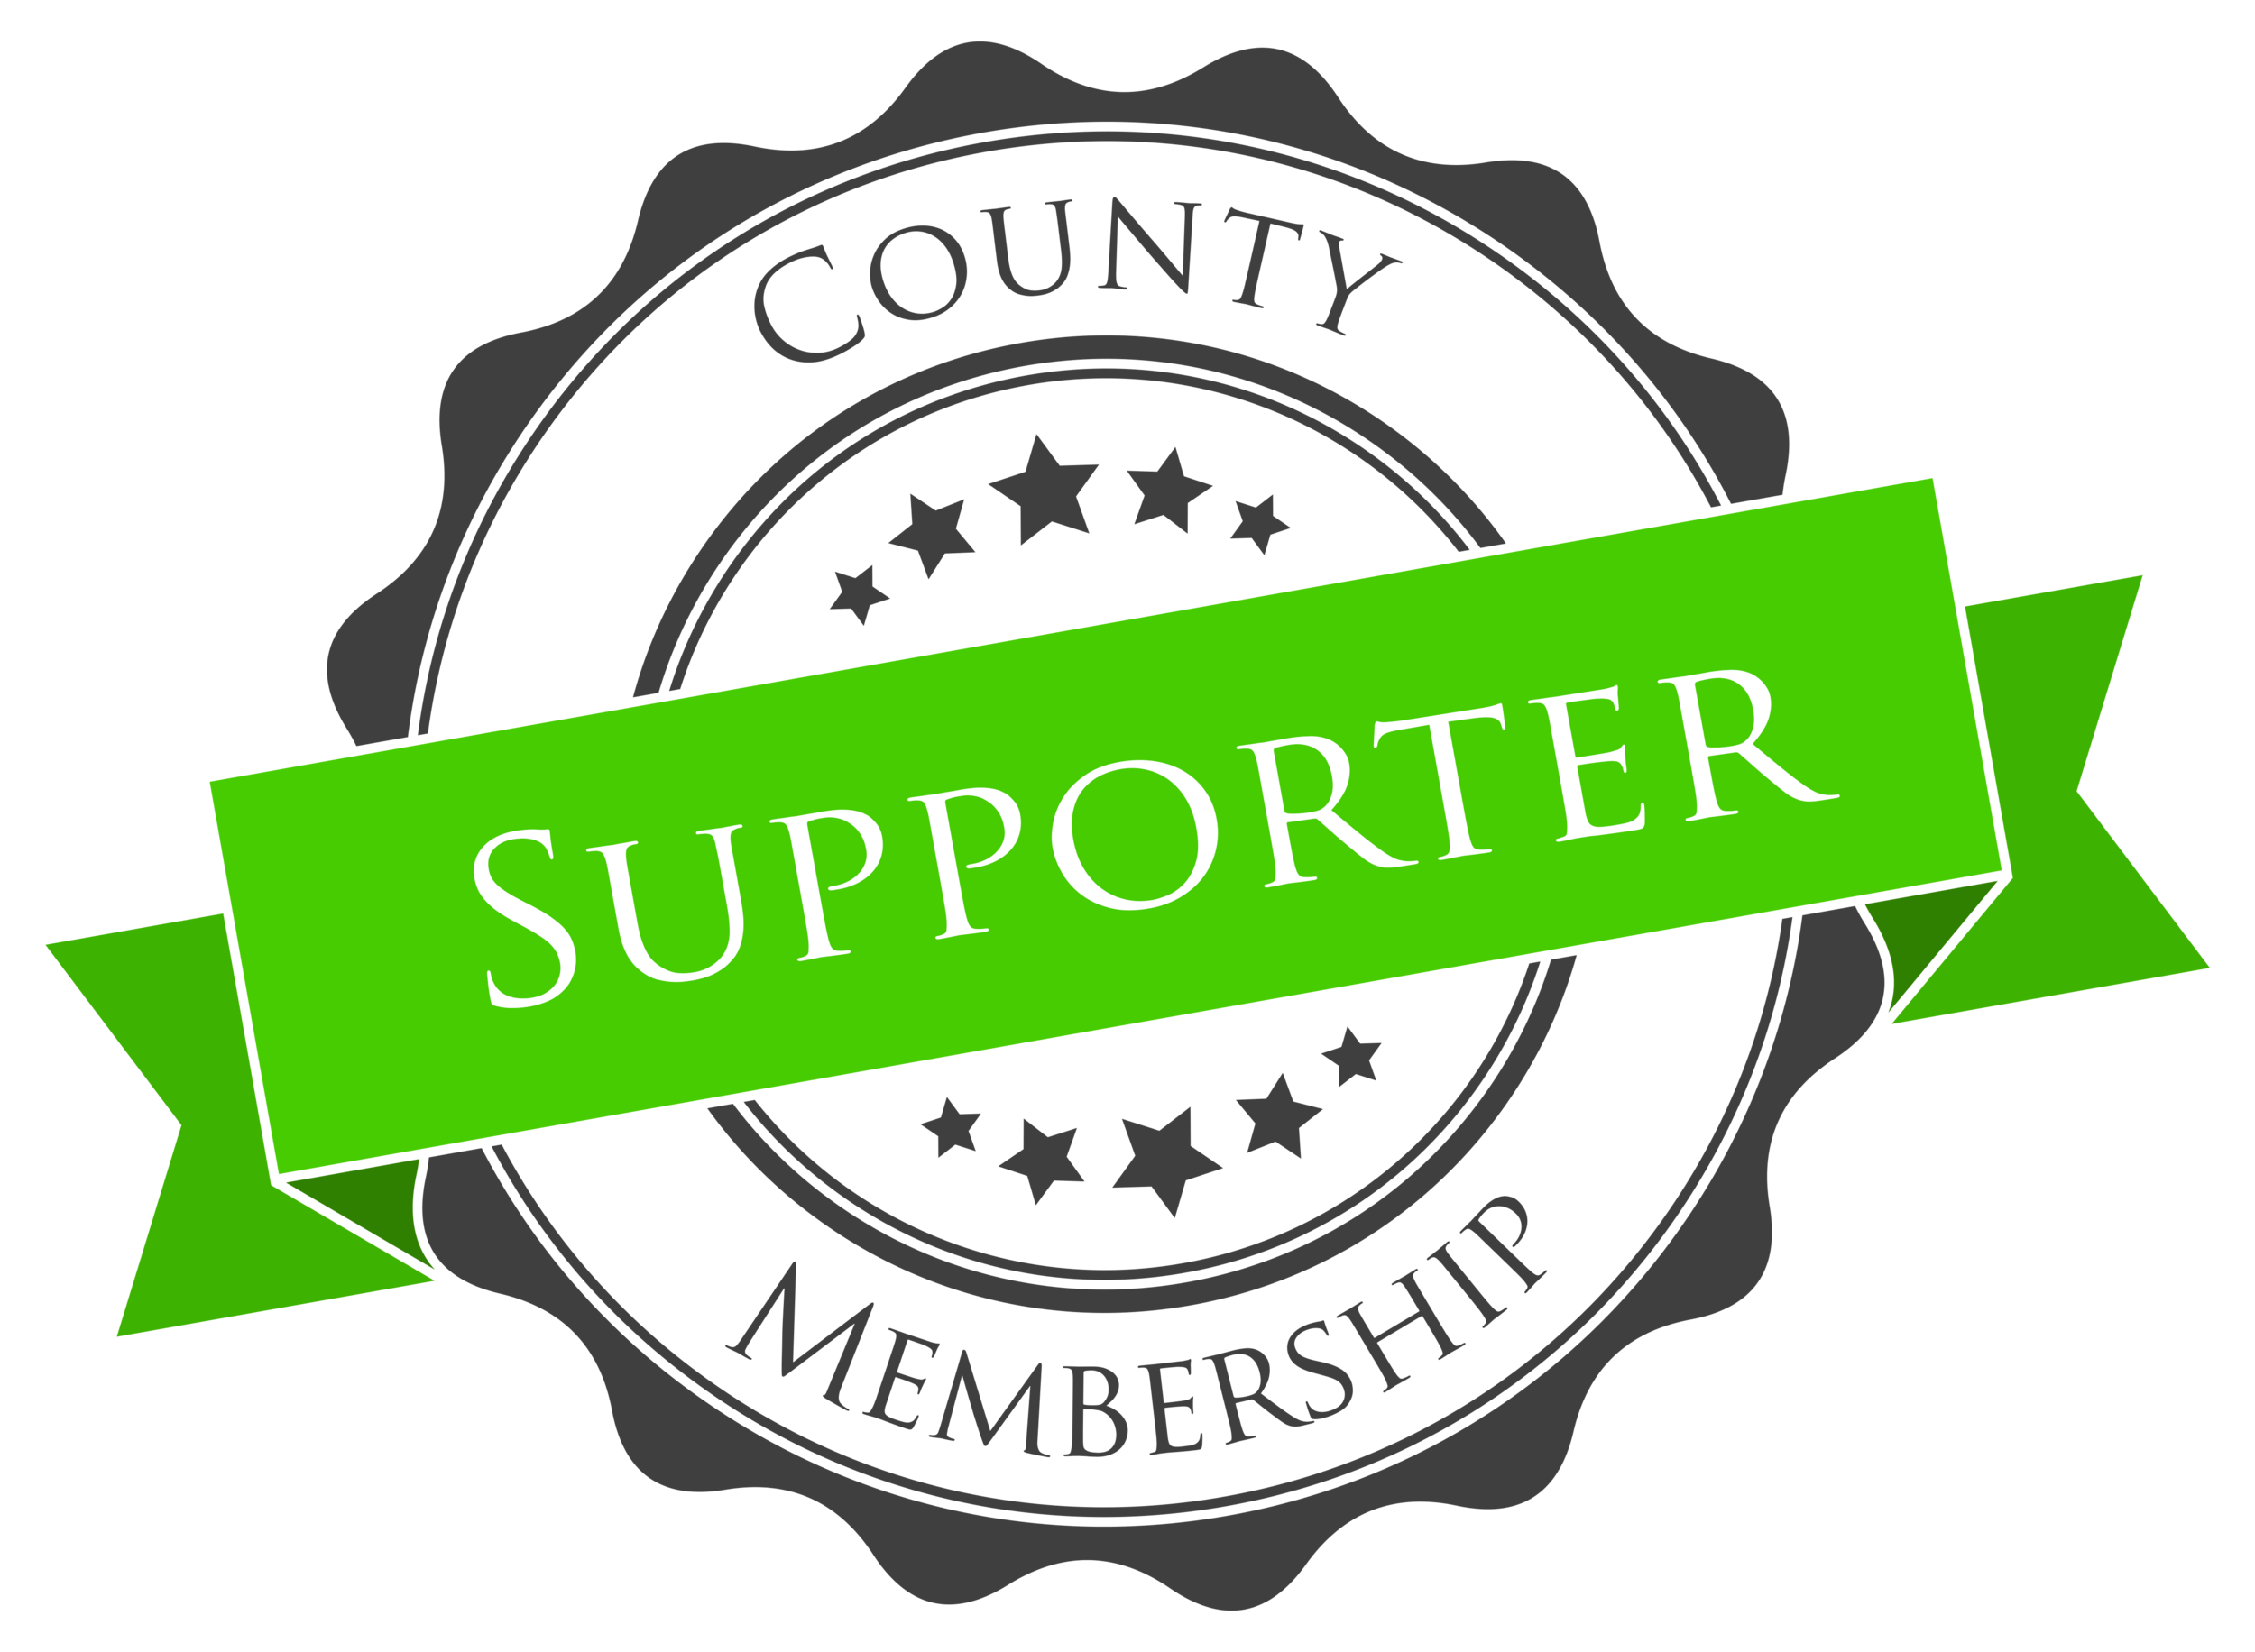 Supporter County.png